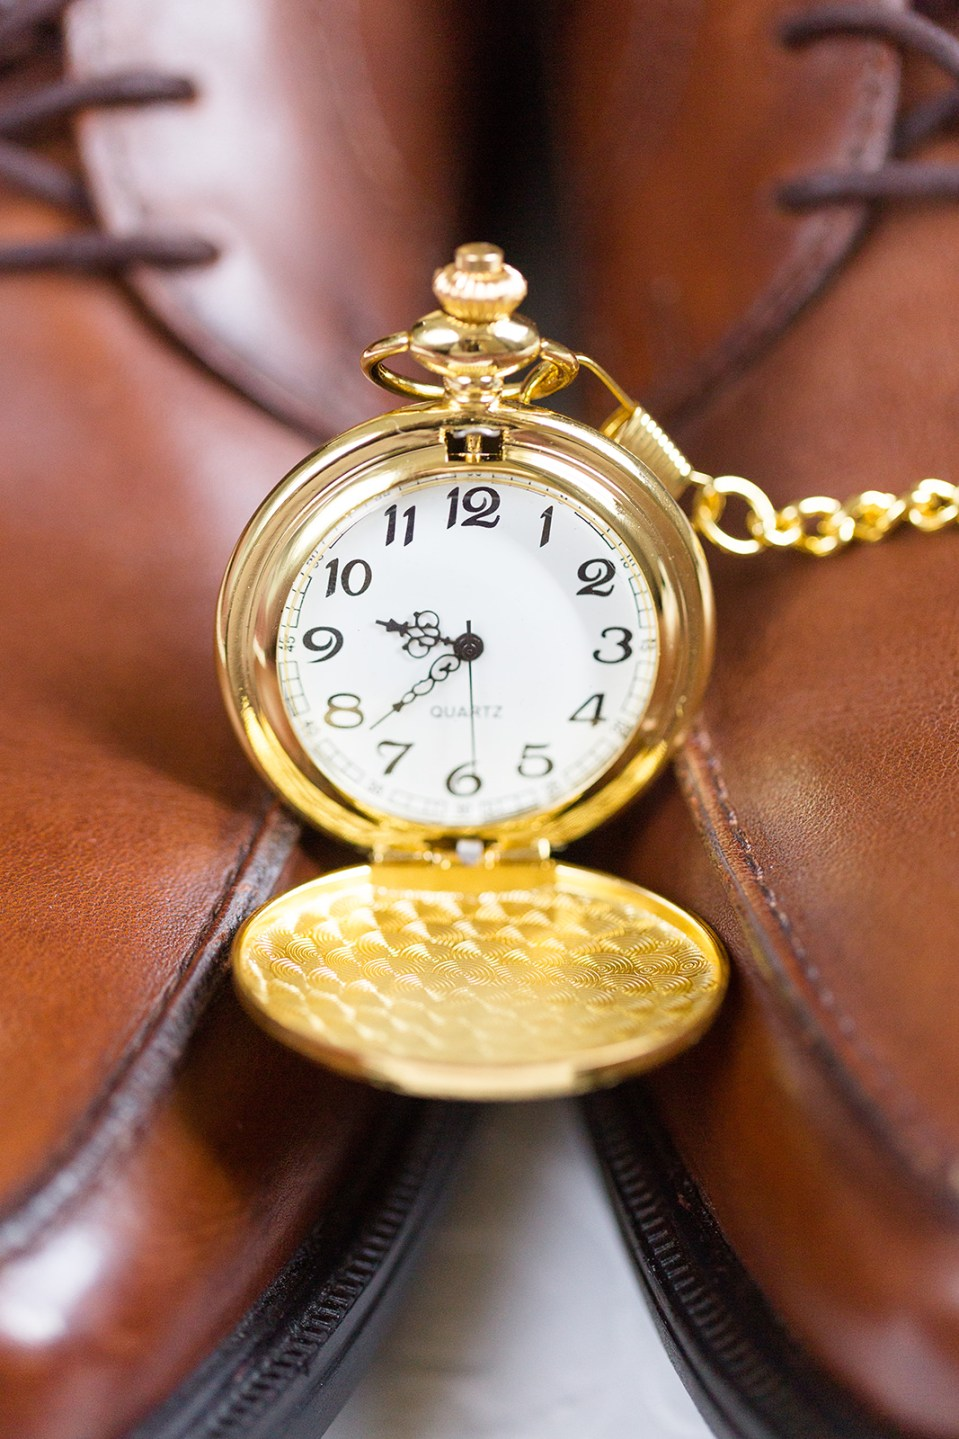 Gold pocket watch on brown dress shoes